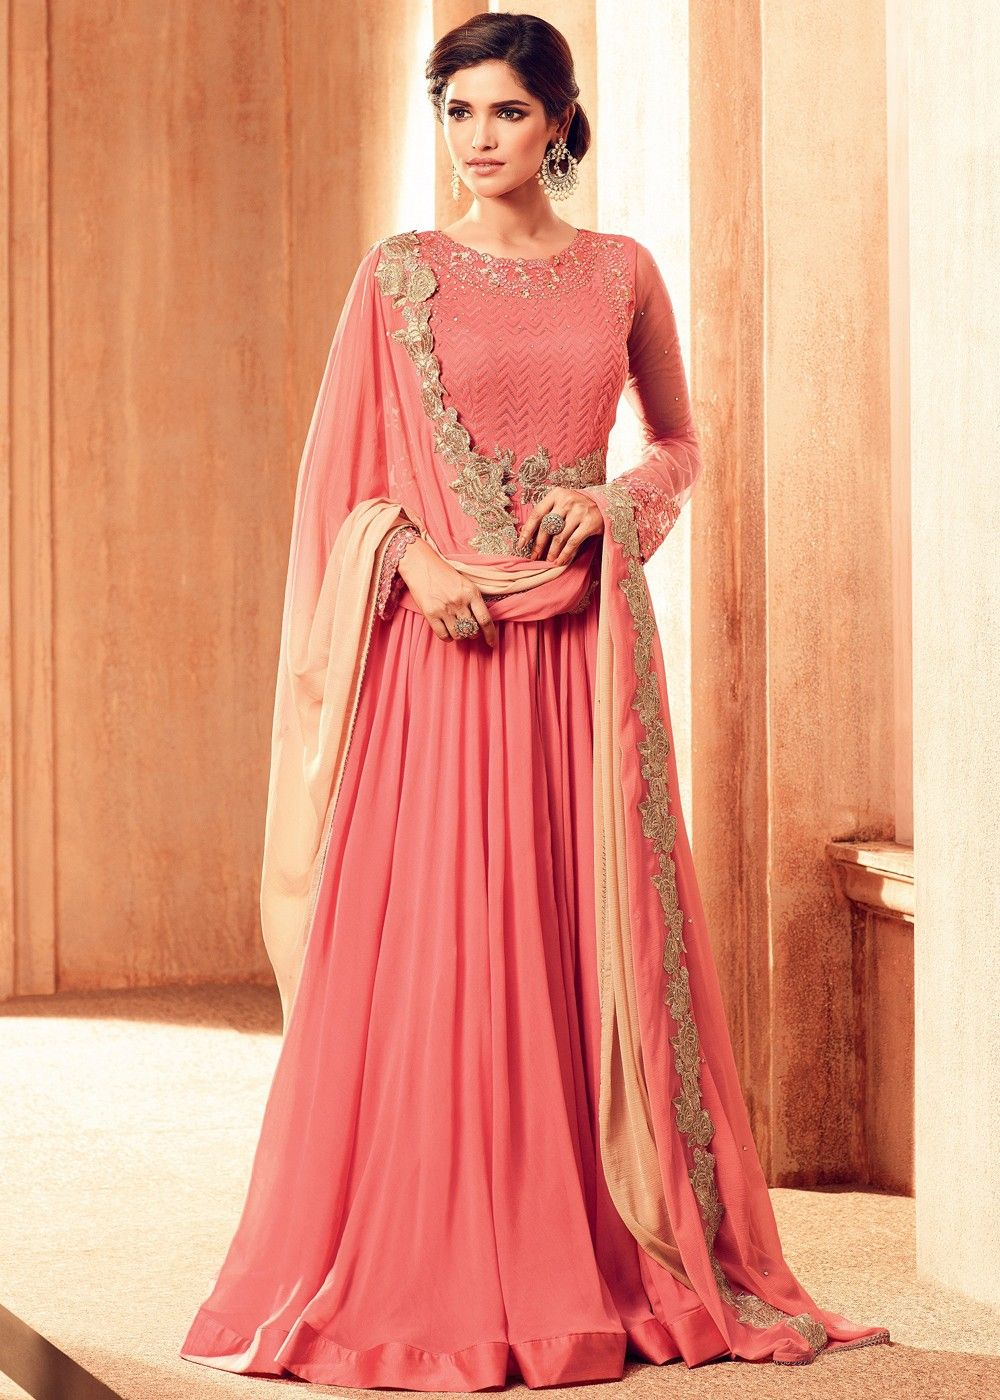 Look spectacular in this peach georgette front slit designer kameez